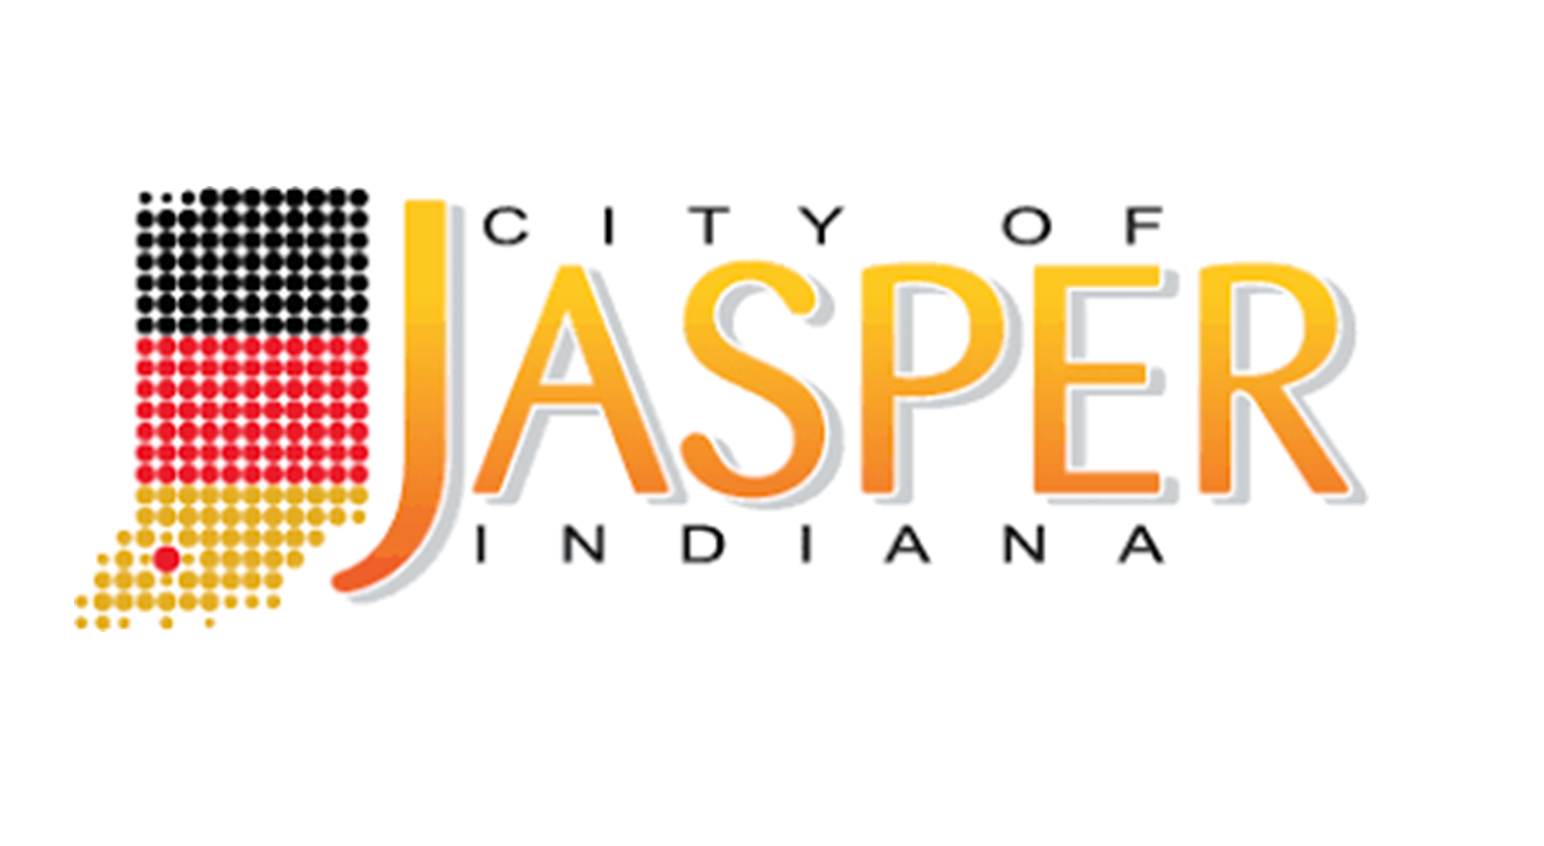 City of Jasper Has Been Named One of the Best Cities to Live in the United States by 24/7 Wall Street